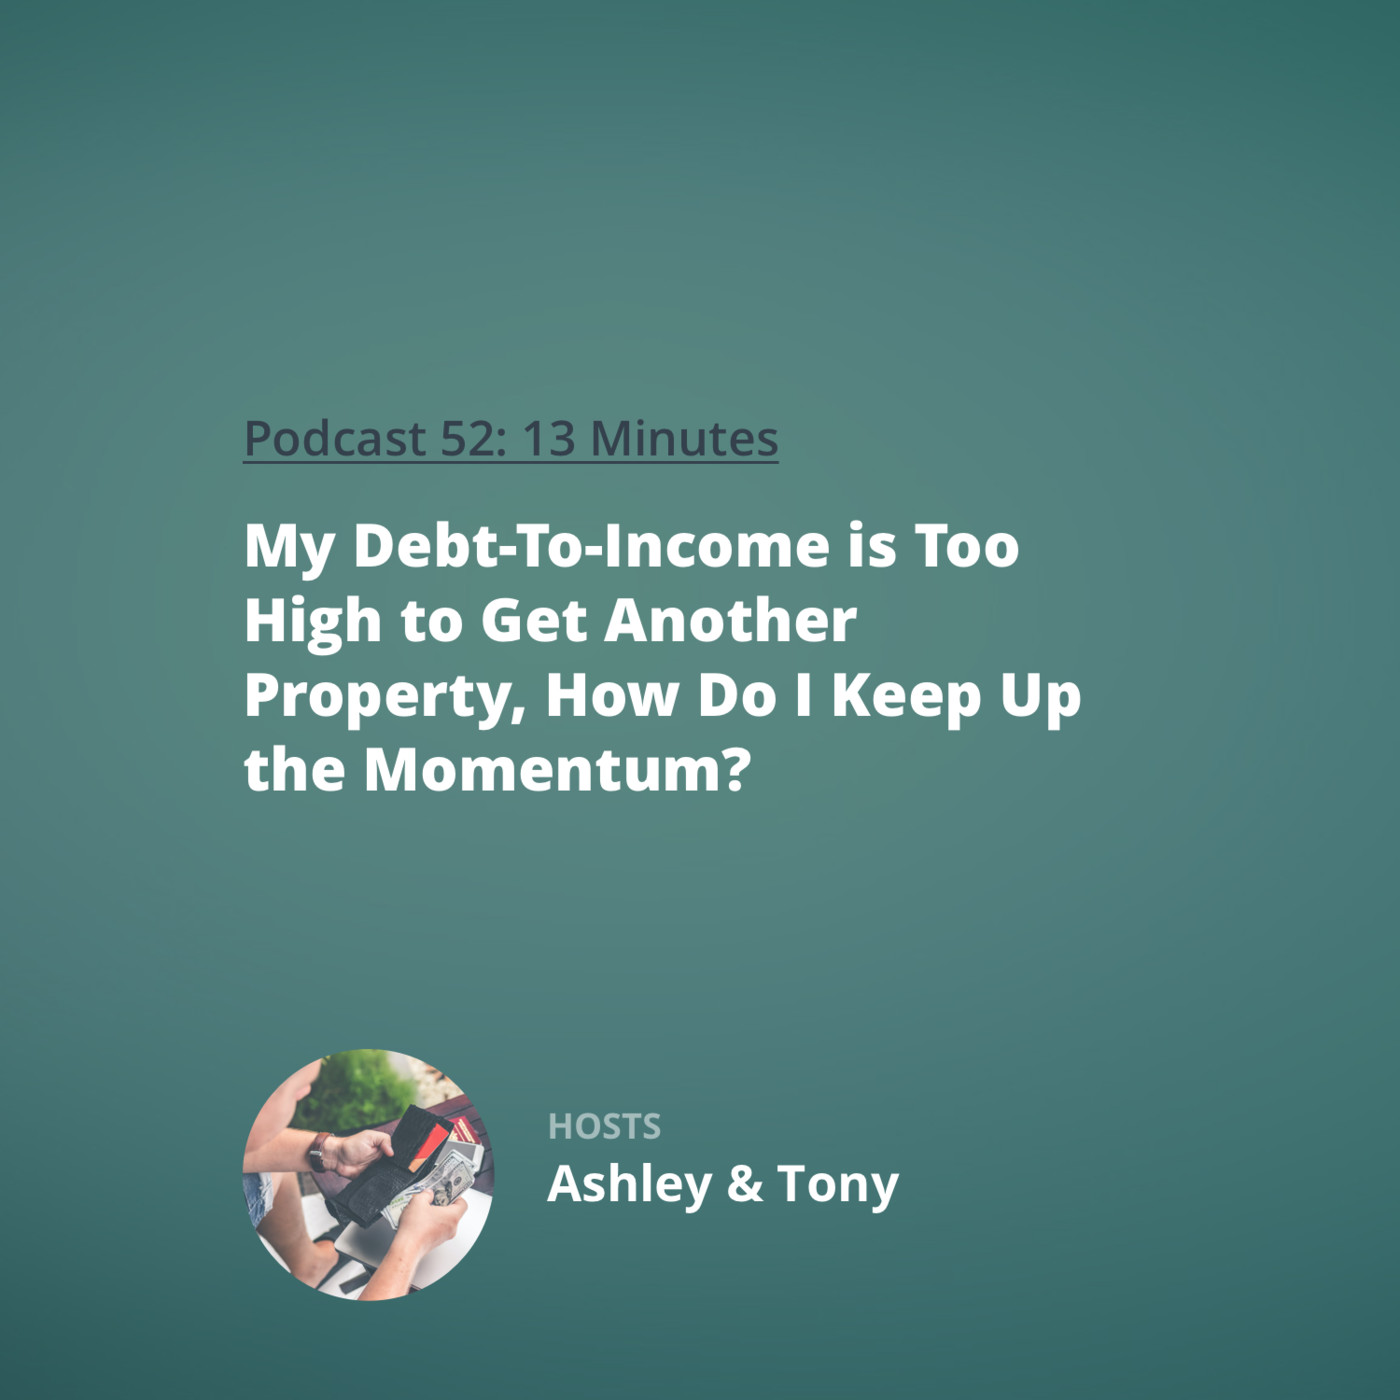 Rookie Reply: My Debt-To-Income is Too High to Get Another Property, How Do I Keep Up the Momentum?